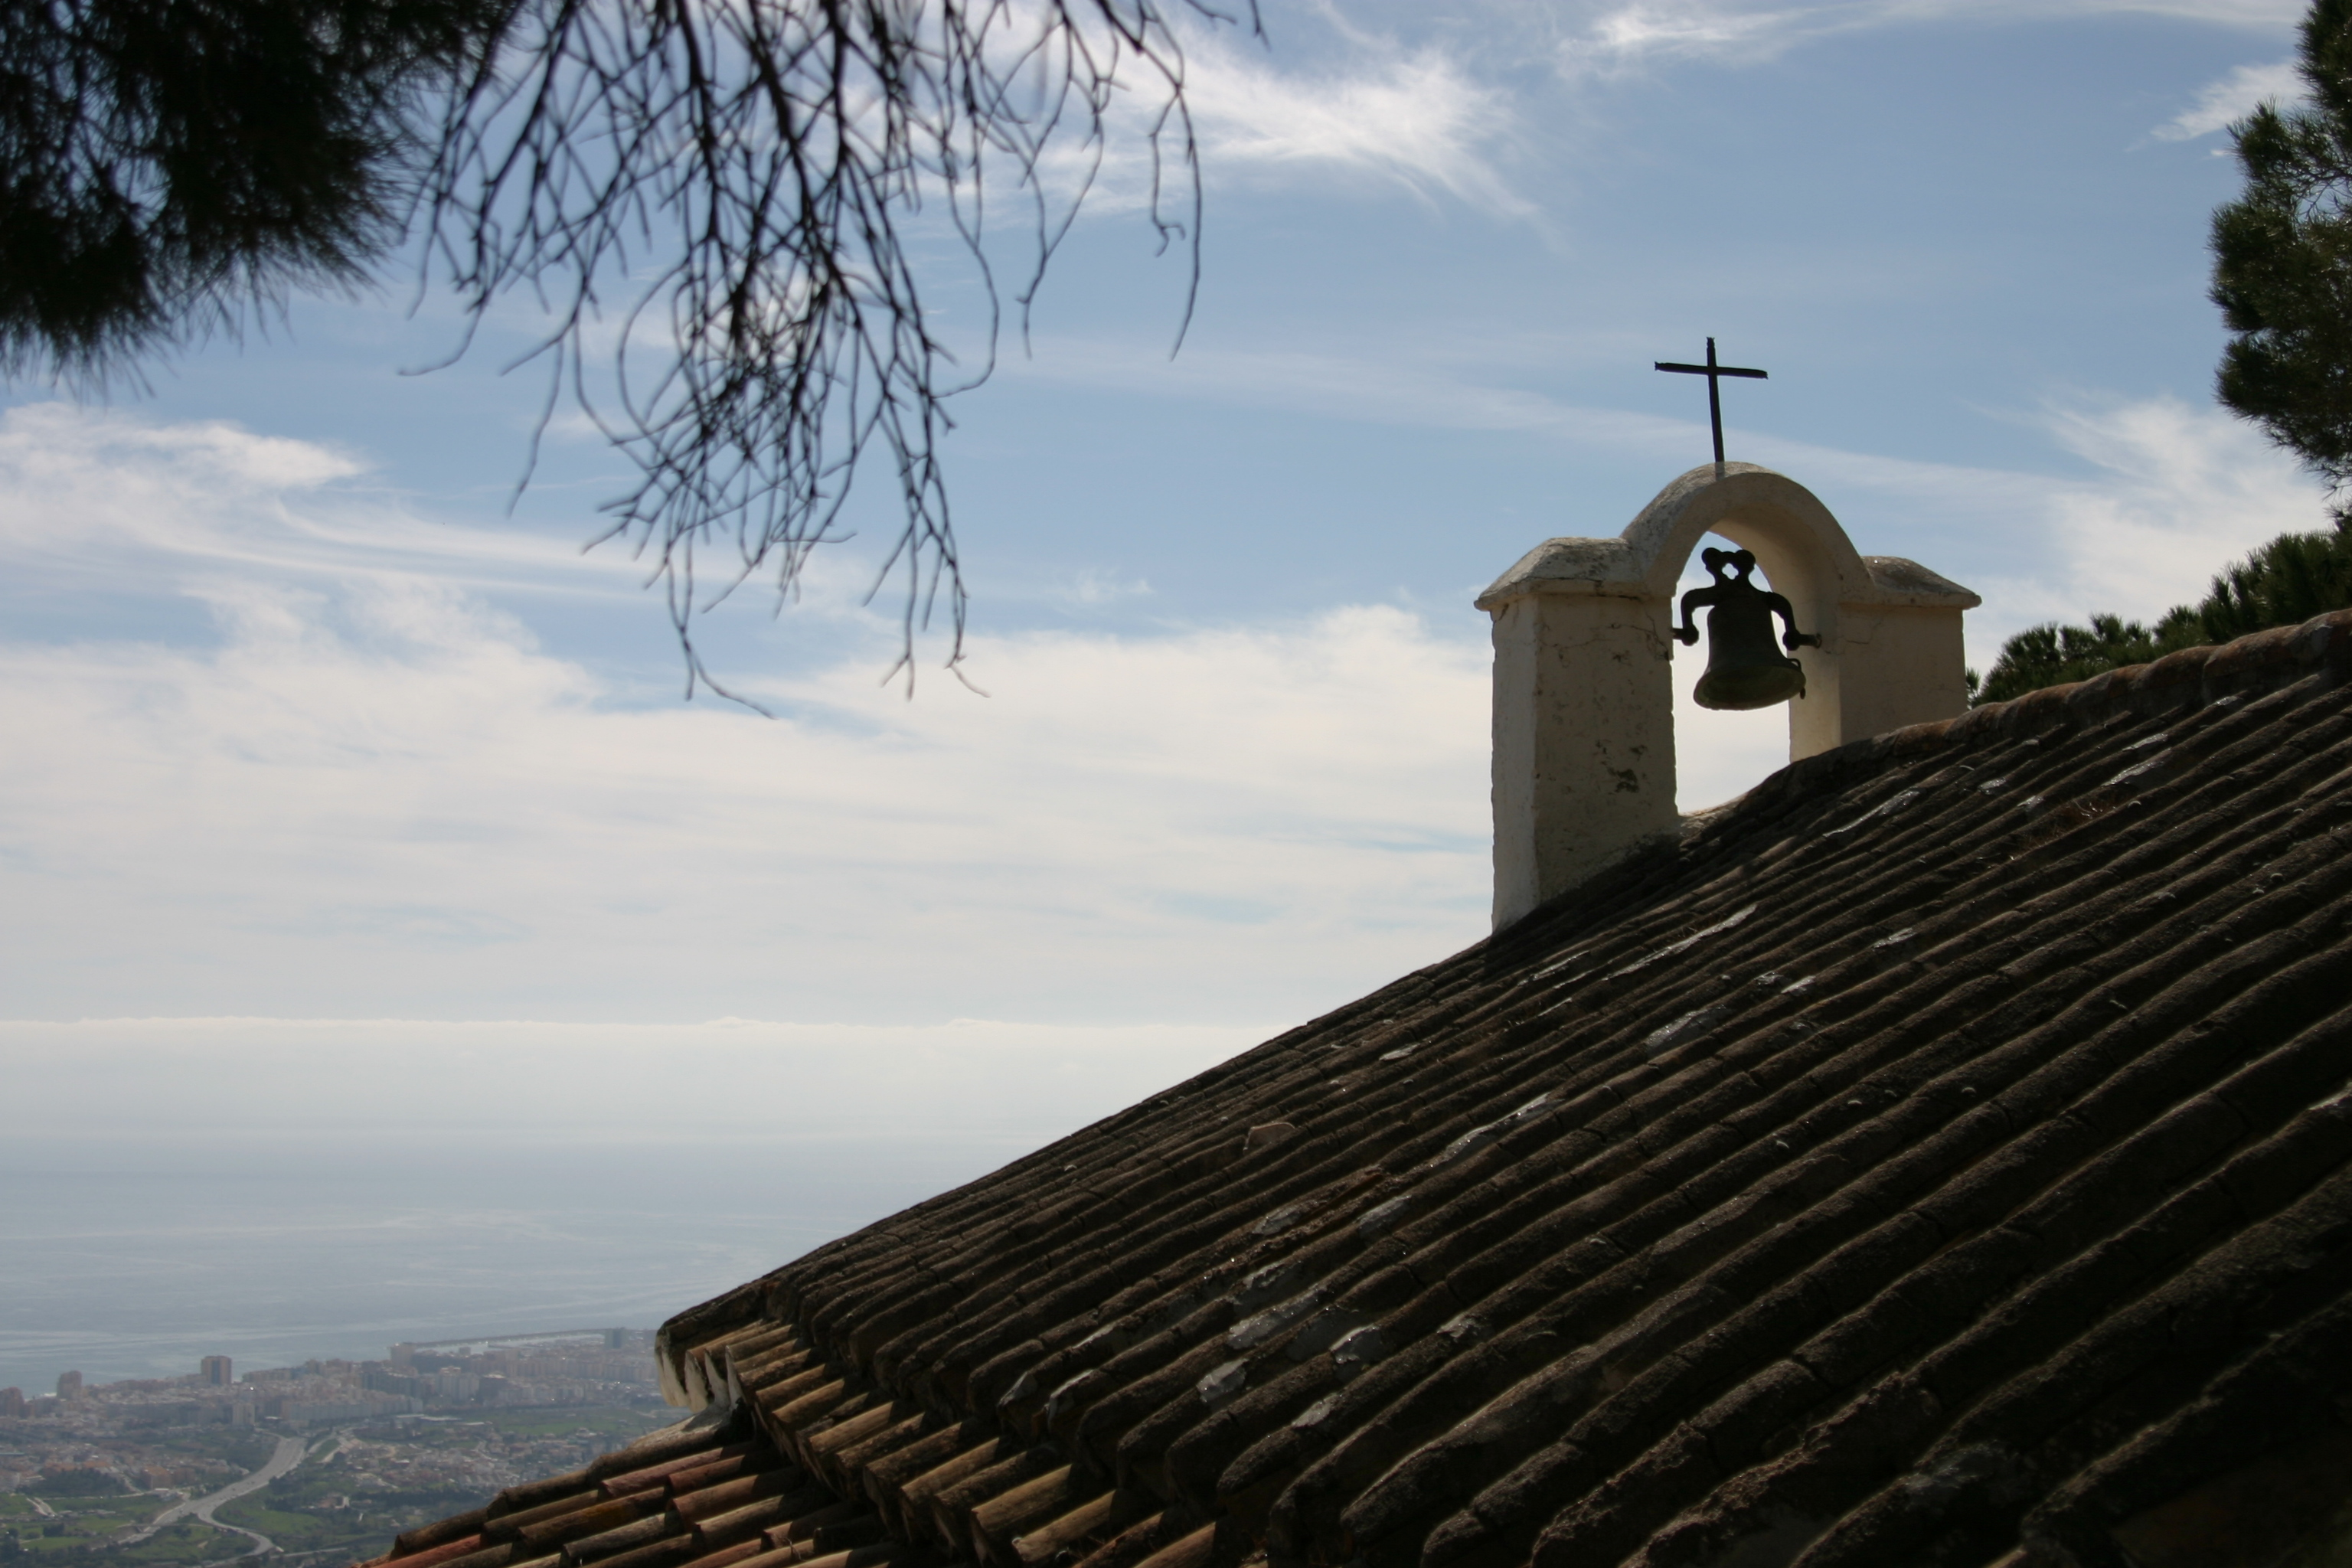 Ermita de calvairo above the A7 freeway and the tower blocks of Fuengirola, www.andrewforbes.com